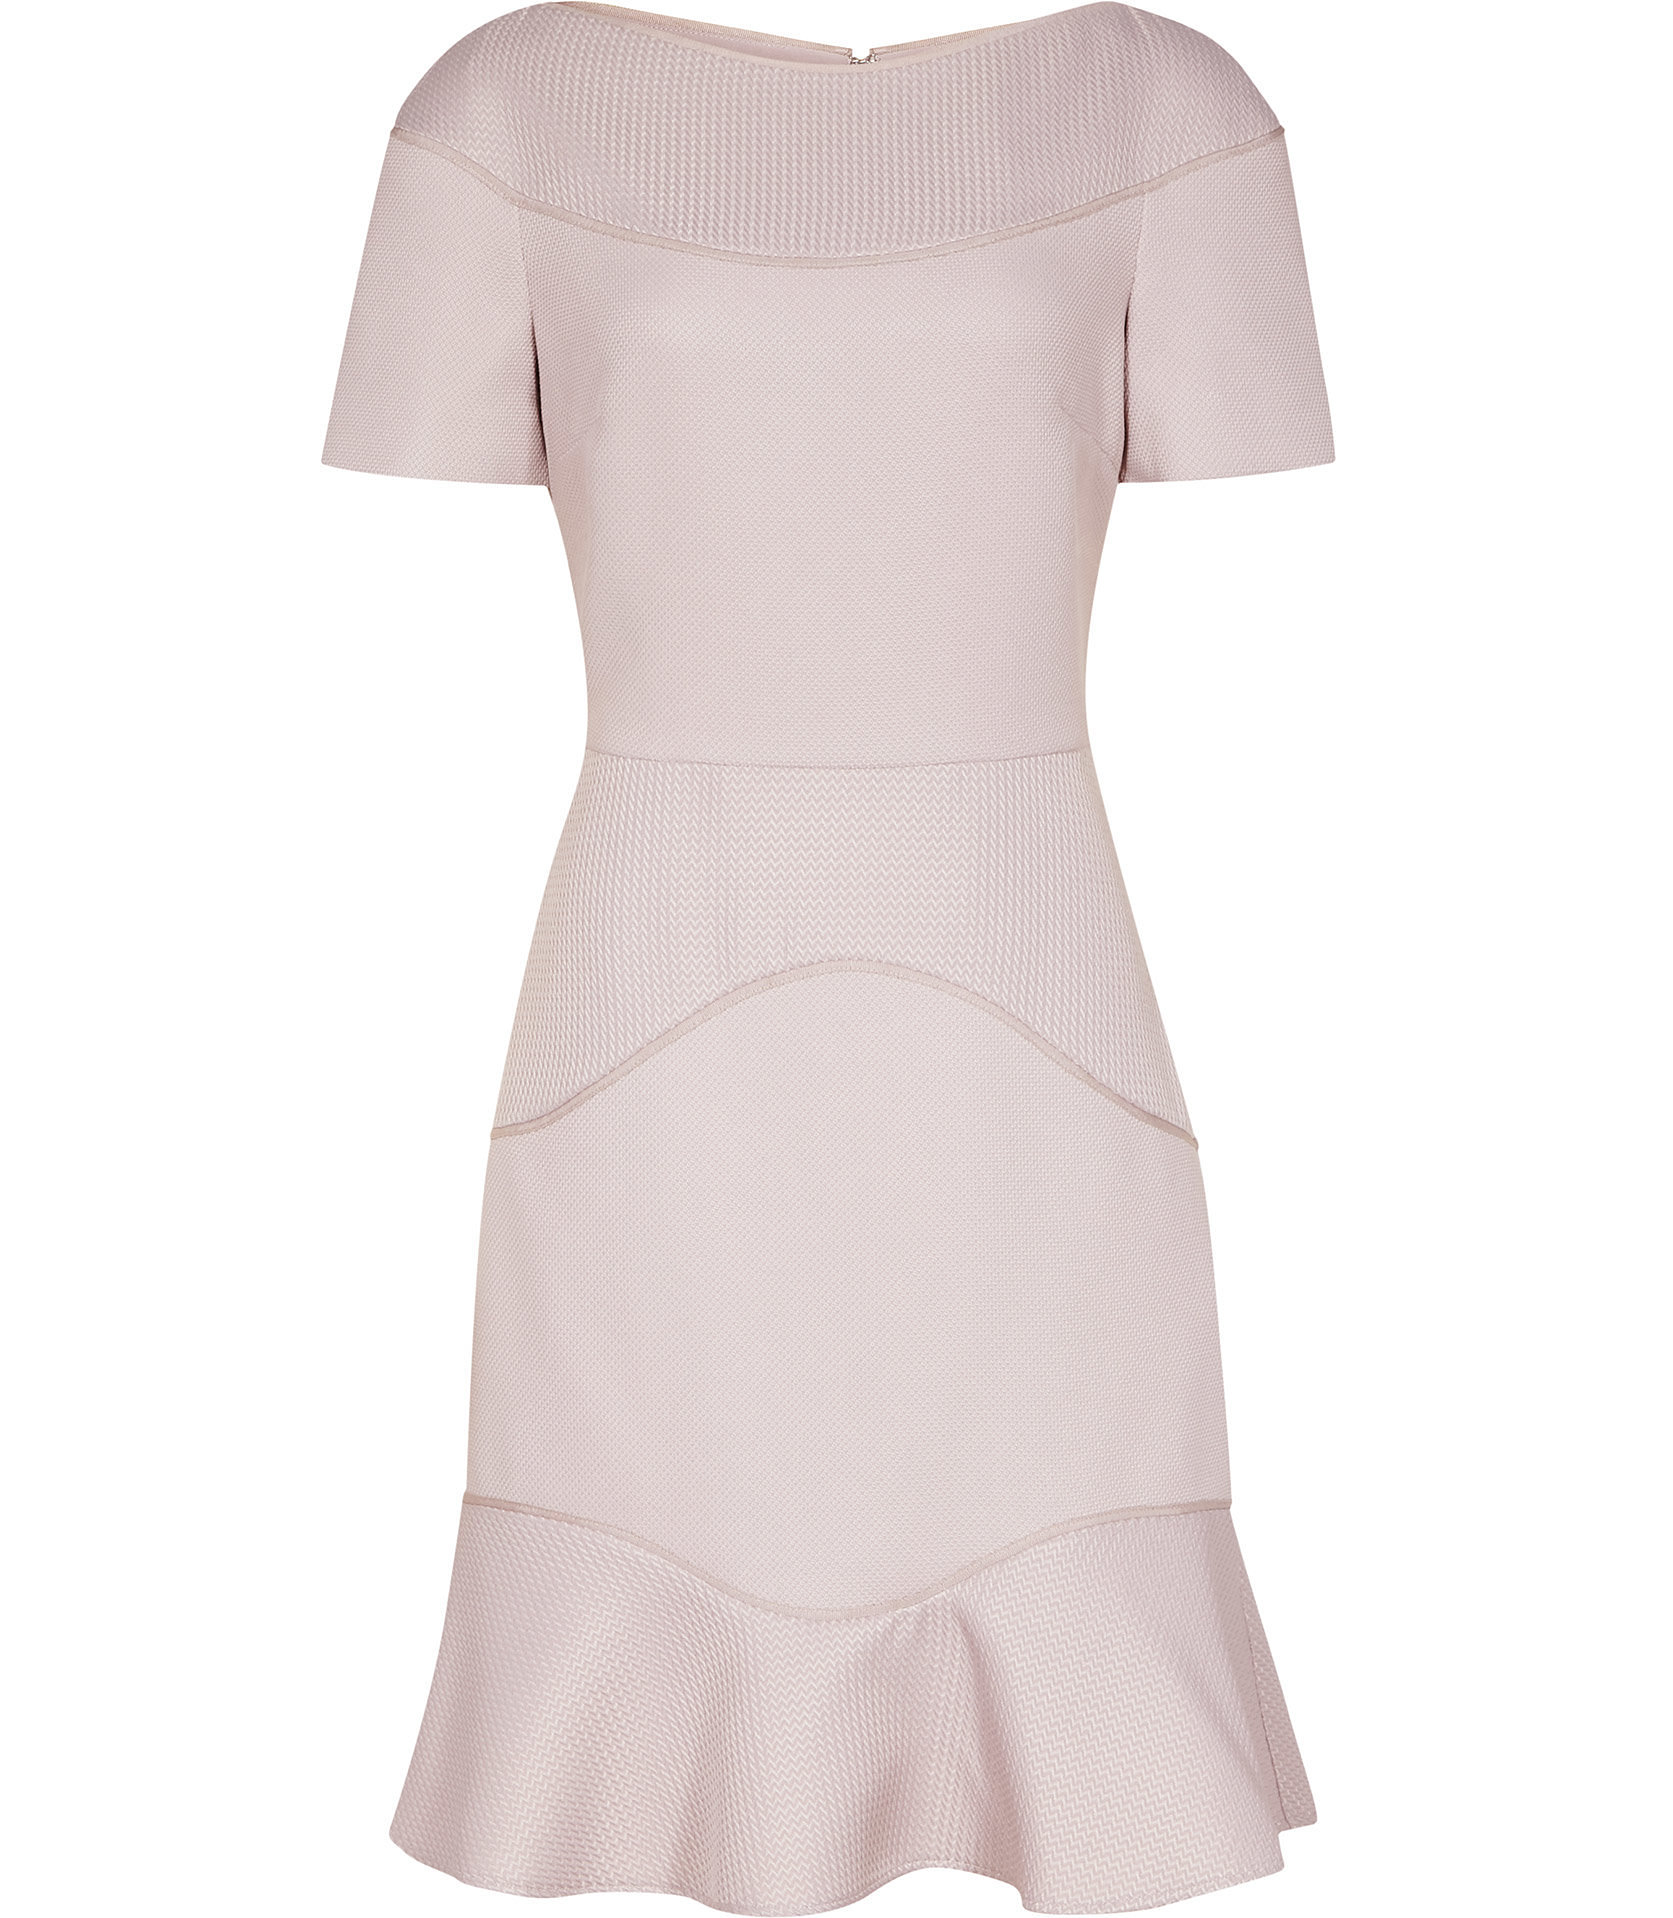 £185.00 at Reiss